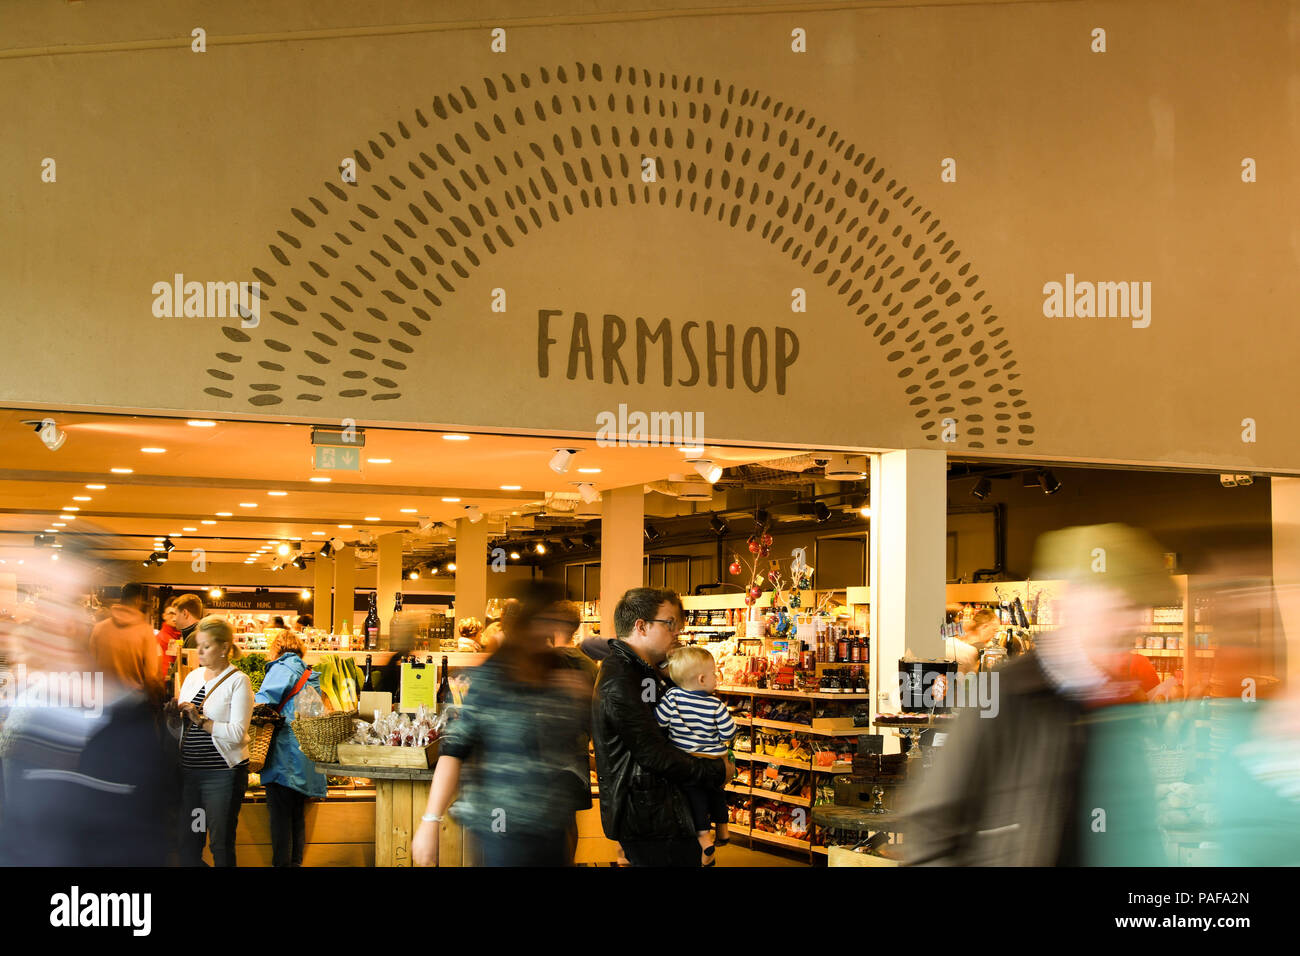 Interior view of entrance to the farm shop in the M5 motorway services in Gloucester. Slow shutter speed to blur the motion of visitors. Stock Photo